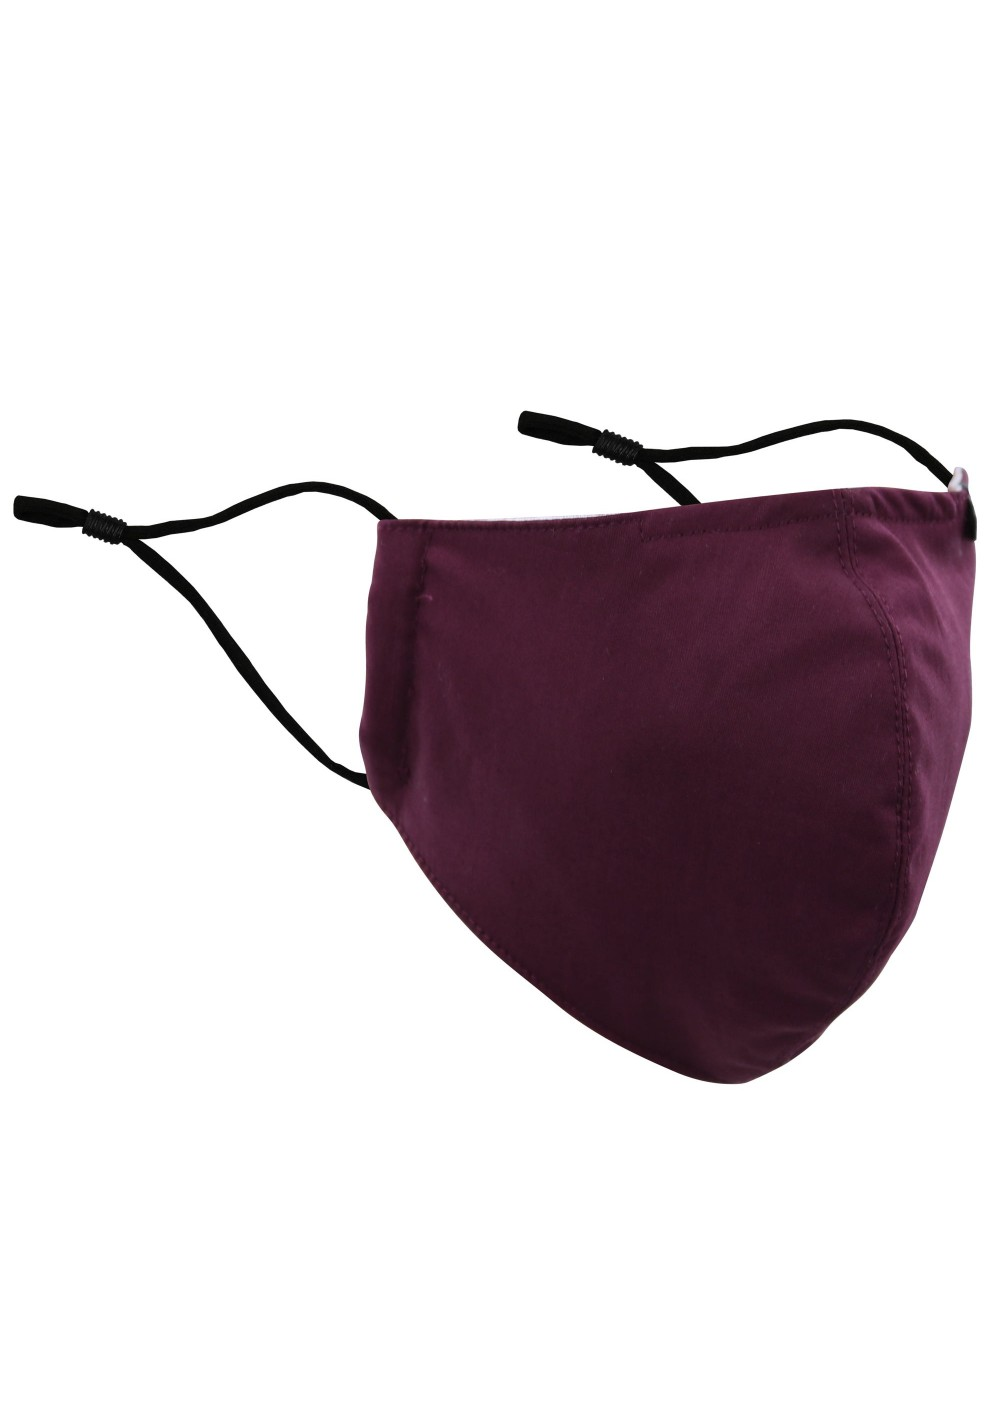 Plum Color Filter Mask in Cotton